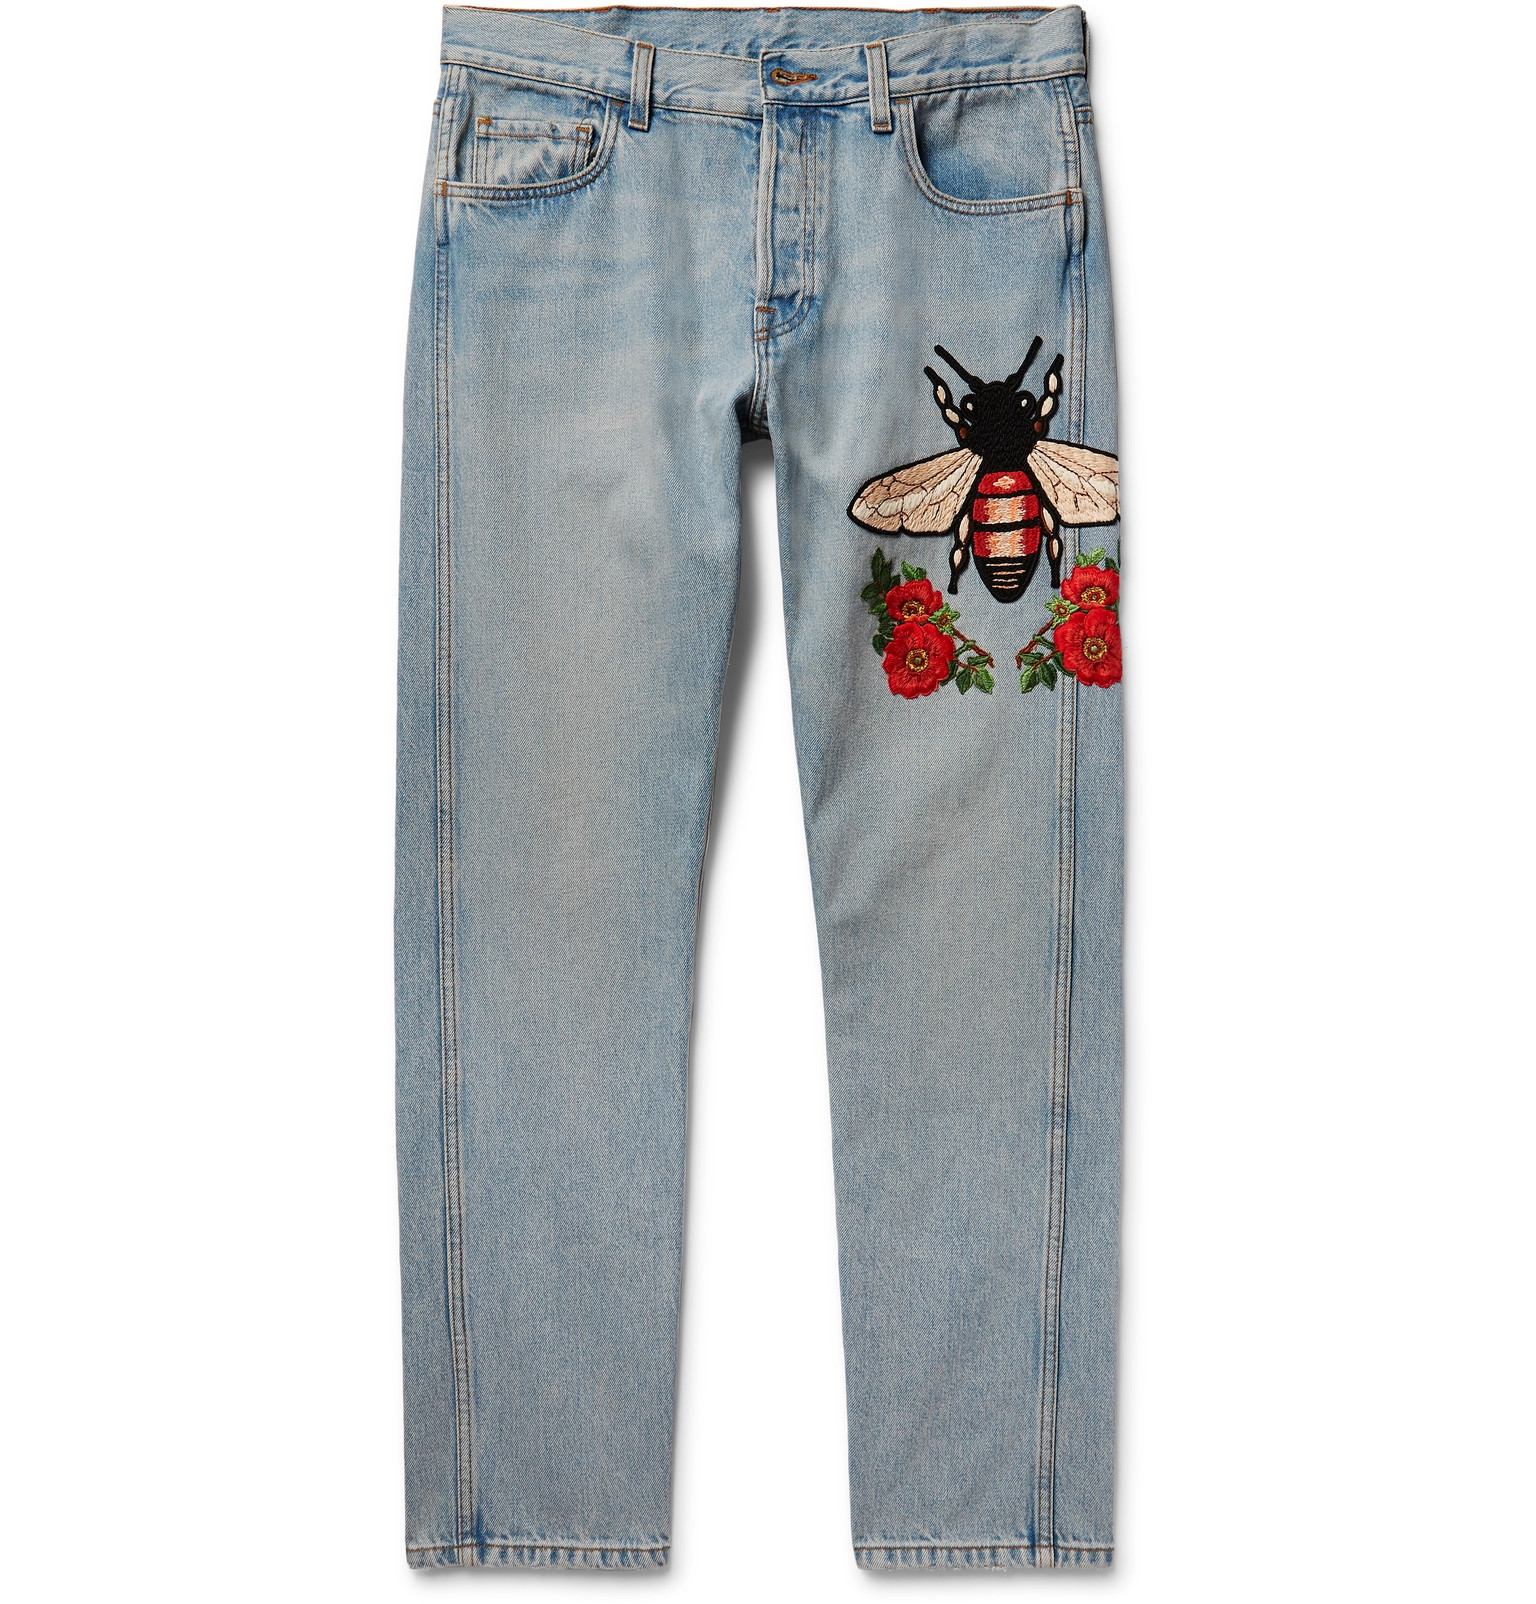 gucci jeans. gucci slim-fit embroidered stonewashed denim jeans c